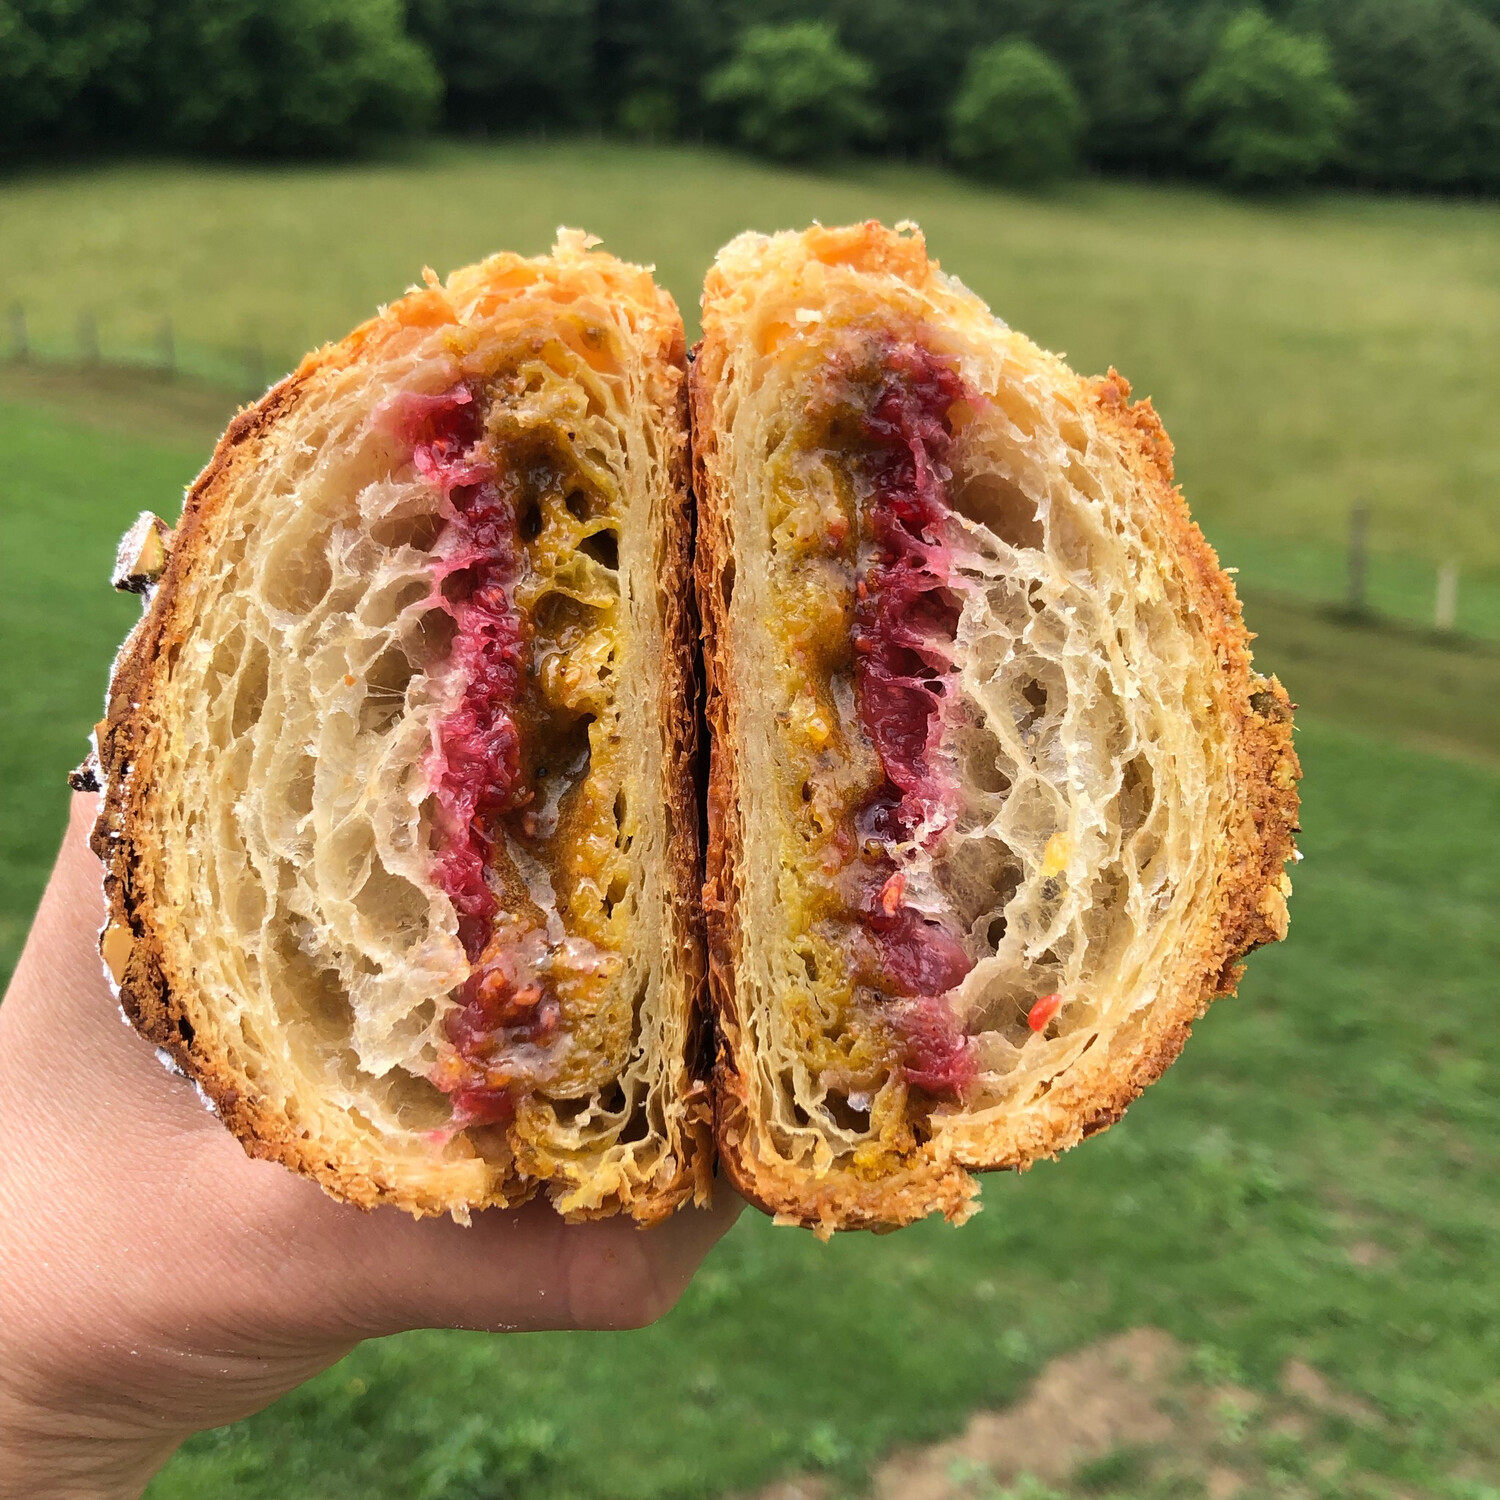 Pistachio And Raspberry Croissant-Saturday Only Item